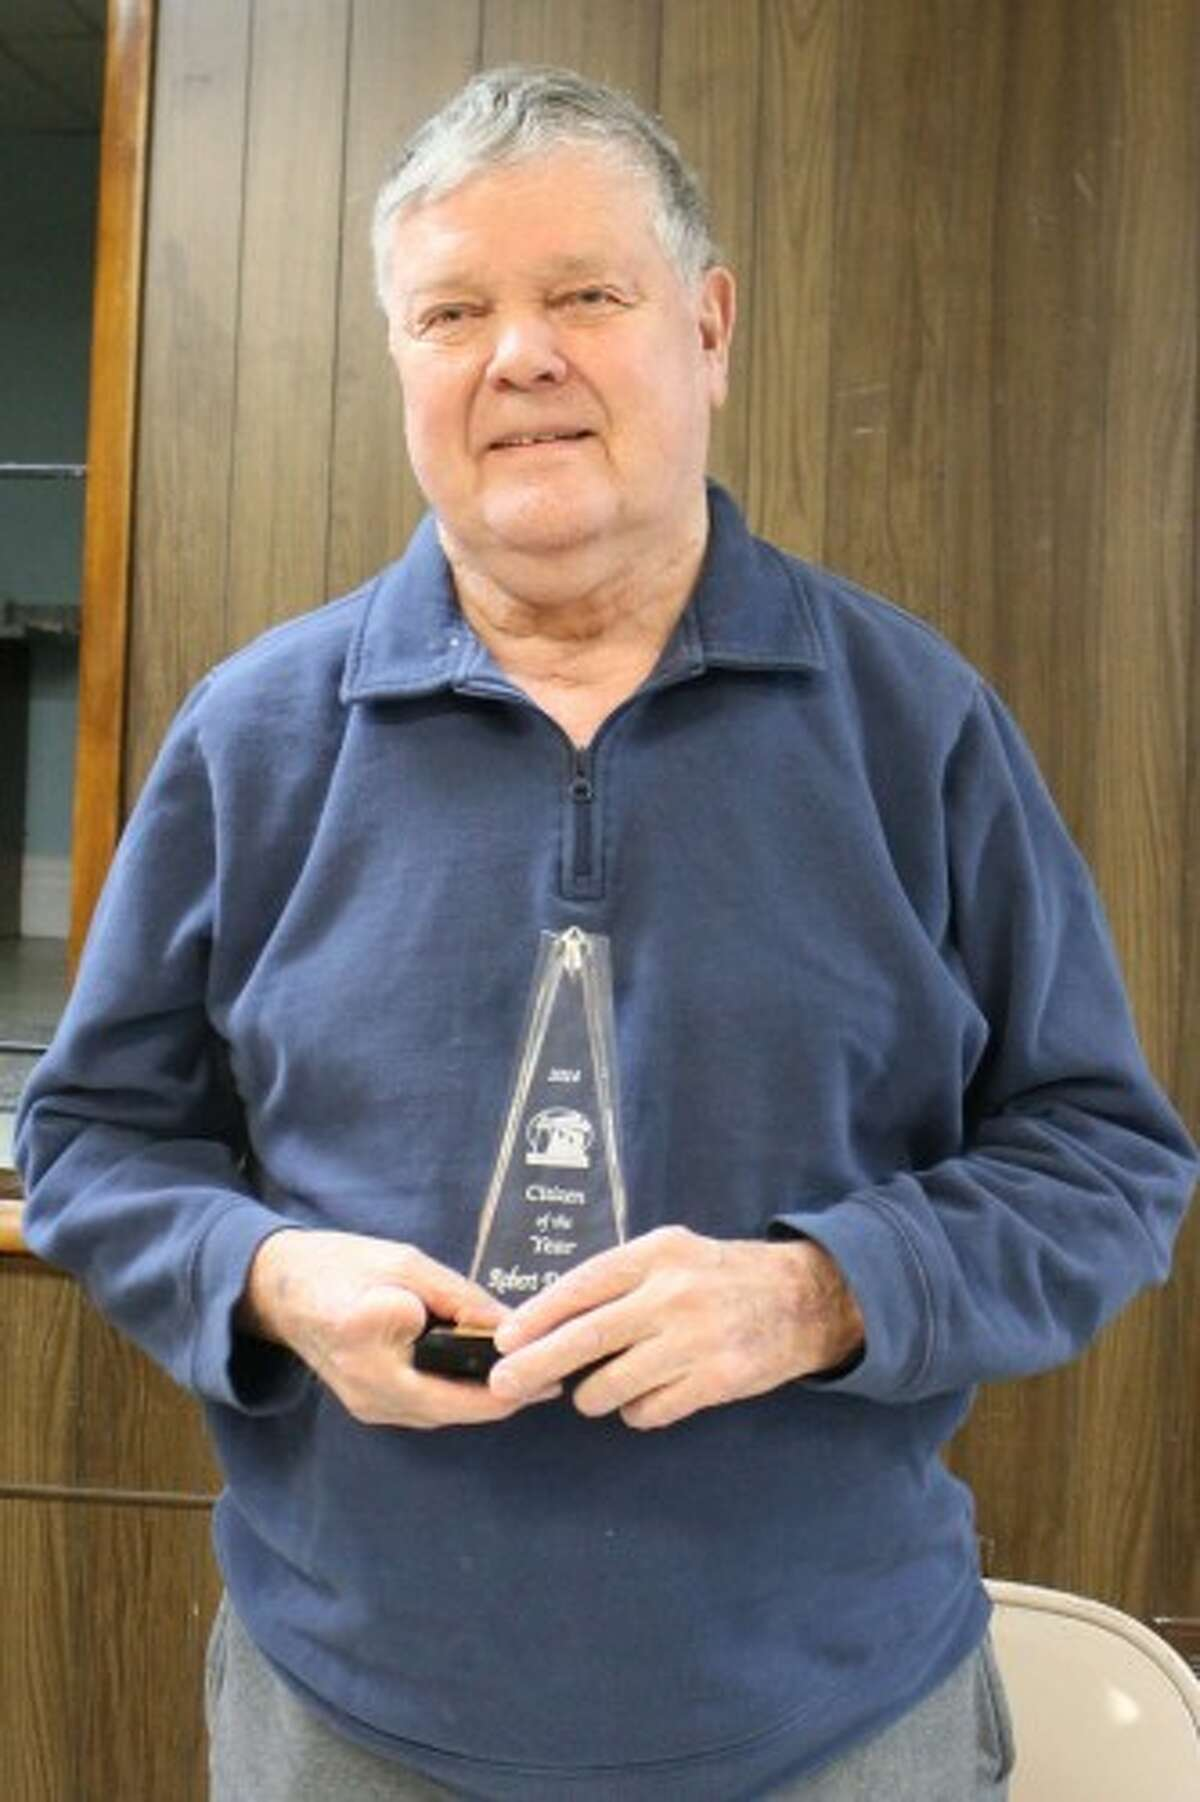 Bob DeYoung, 2014 Citizen of the Year, holds his award shortly after the announcement at the Eastlake Village Council meeting this month. (Justine McGuire/News Advocate)